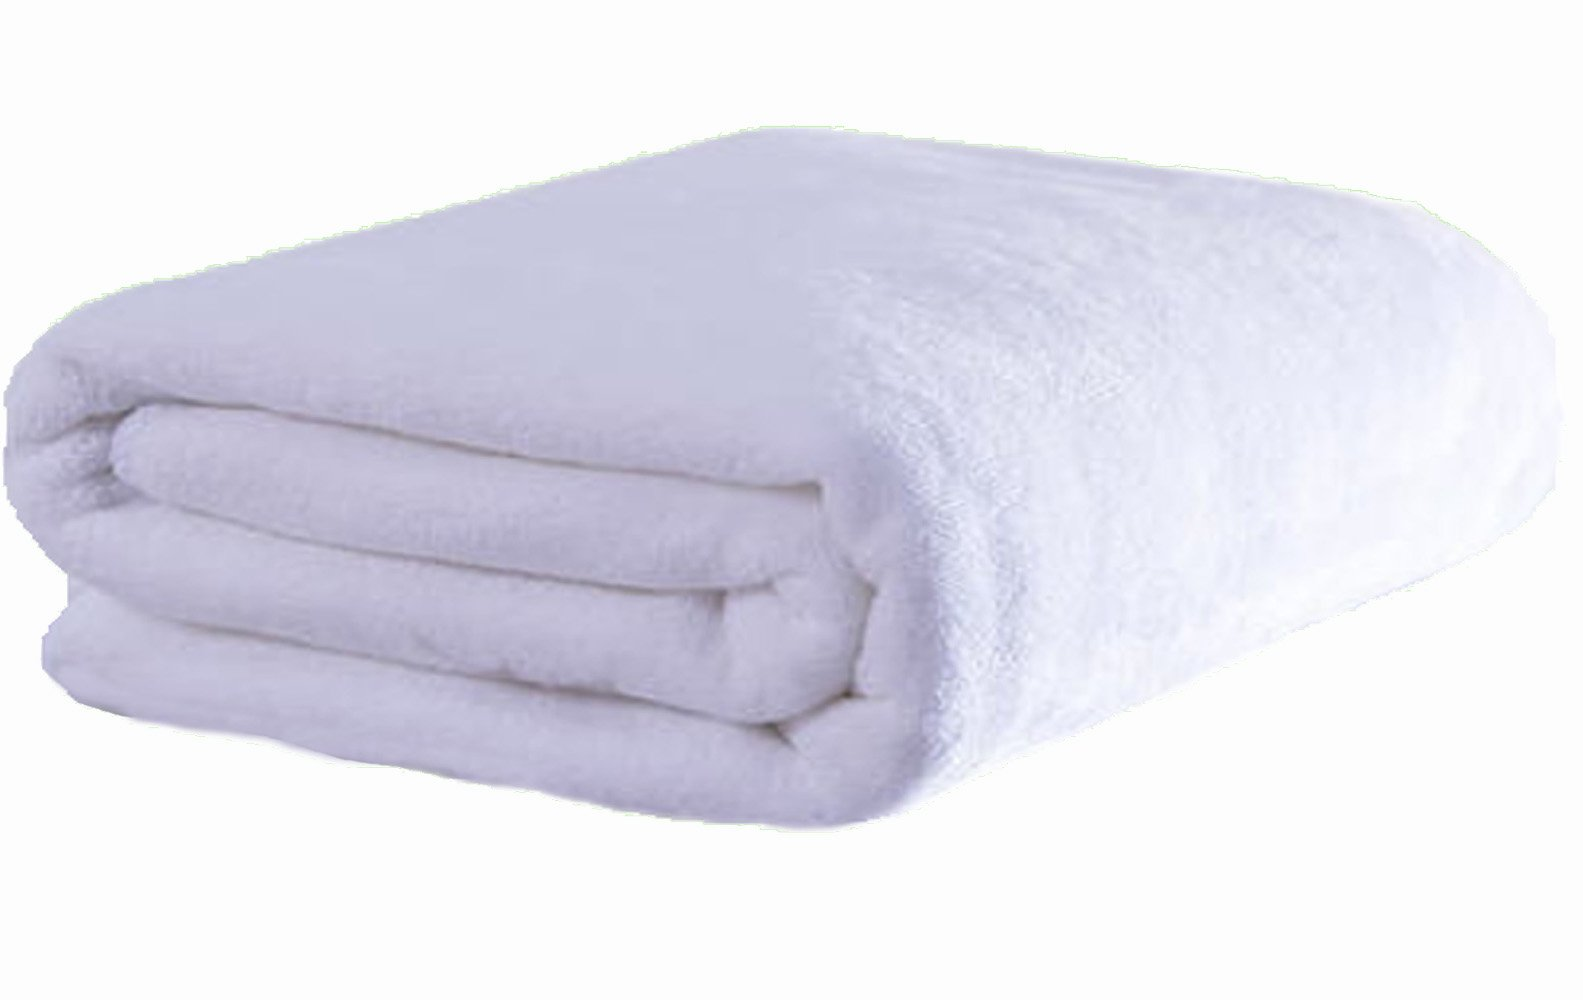 Simplife Microfiber Bath Towels Bath Sheets Beach Spa Bathroom Towels Extra Large Absorbent Towels(36 Inch X 72 Inch, White)